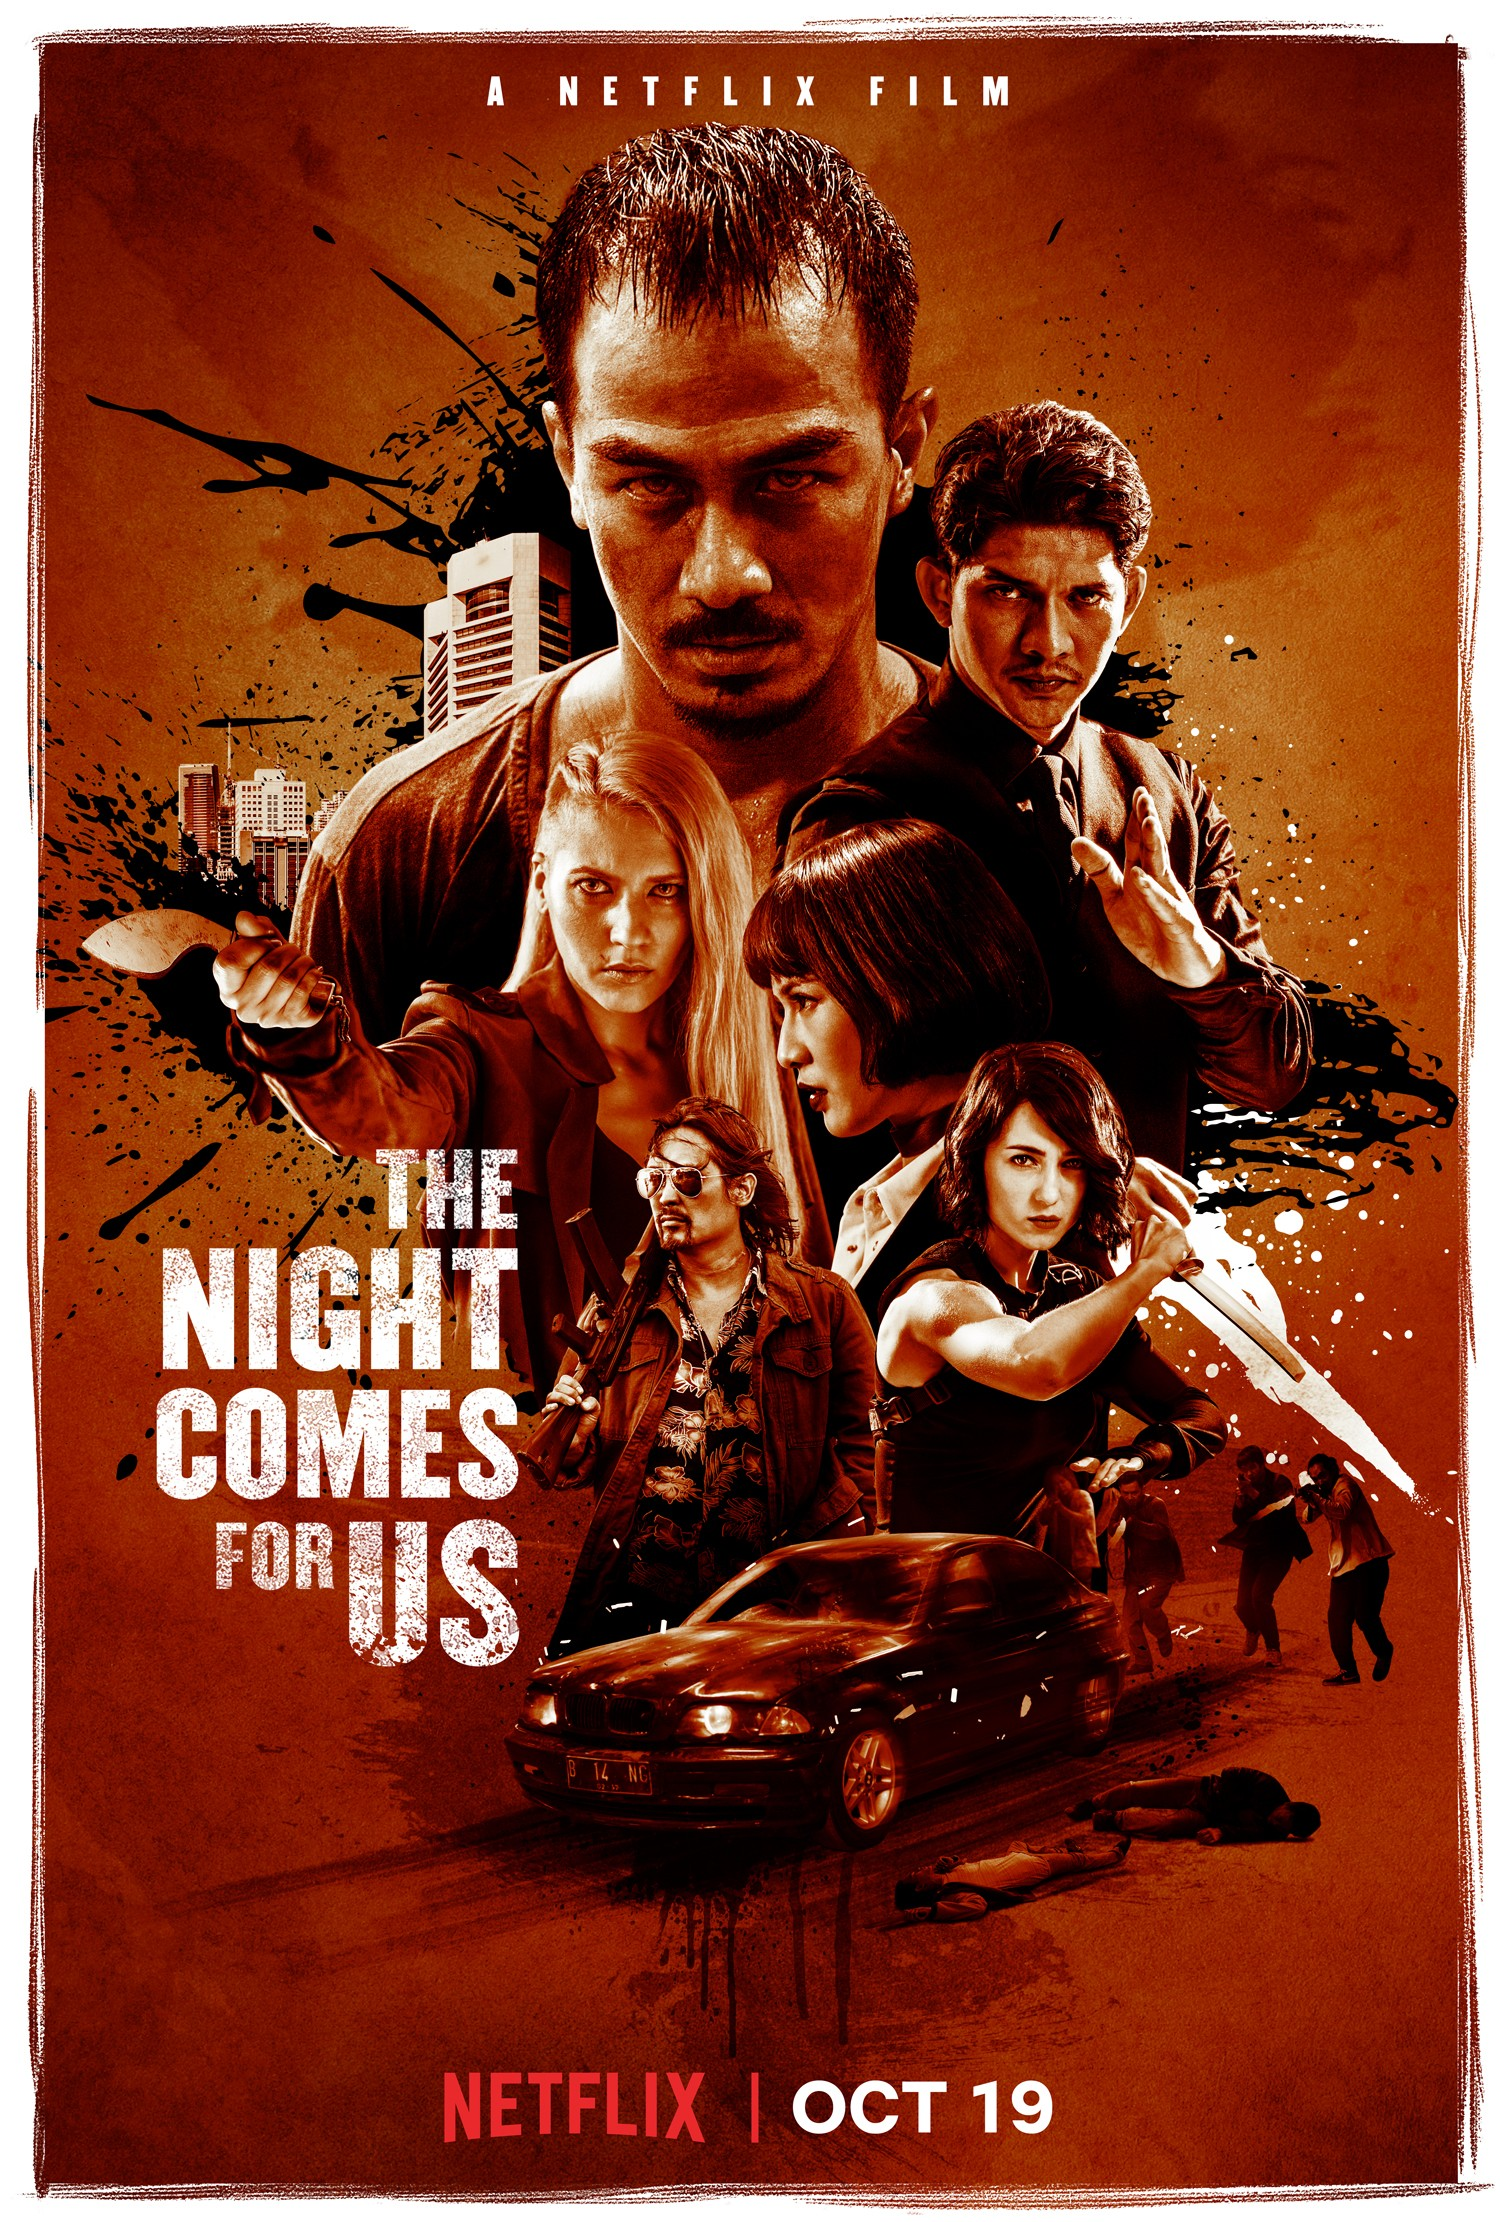 The Night Comes For Us 2018 Rotten Tomatoes